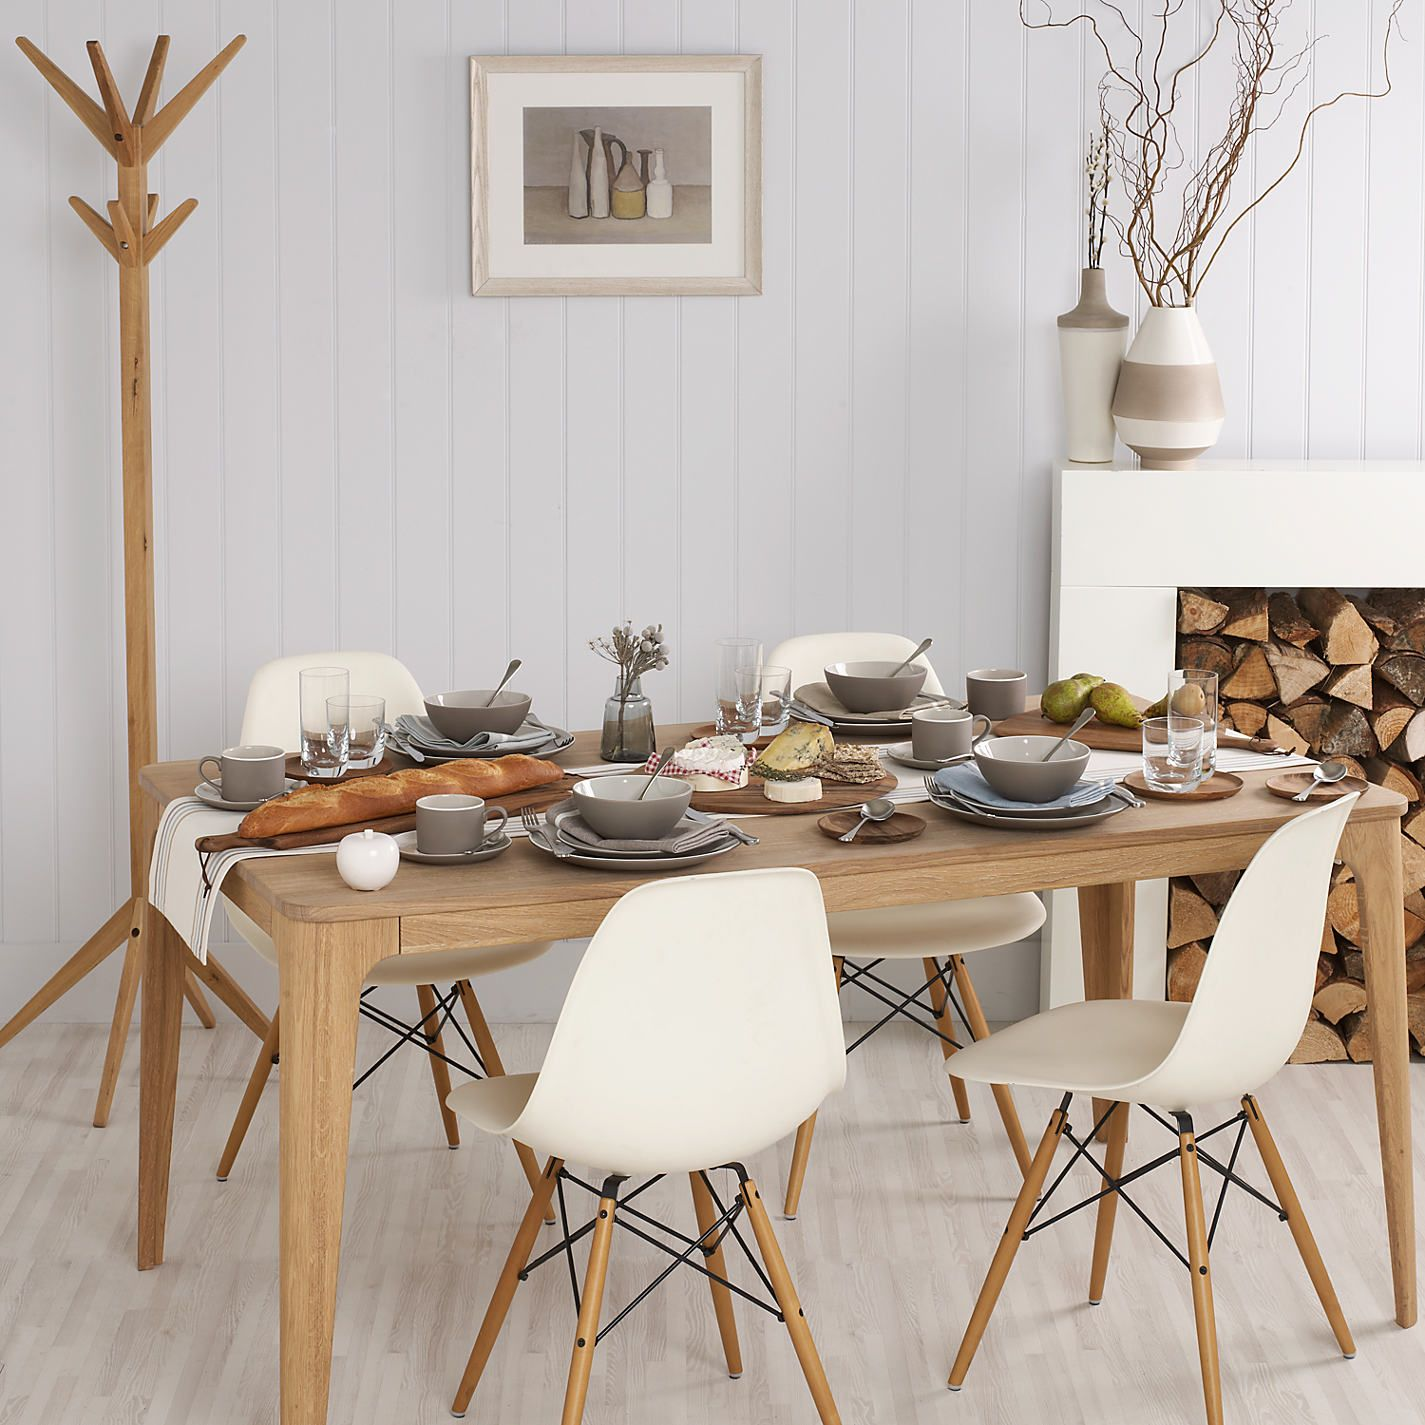 Ebbe Gehl For John Lewis Dining Table With Eames DSW Chairs